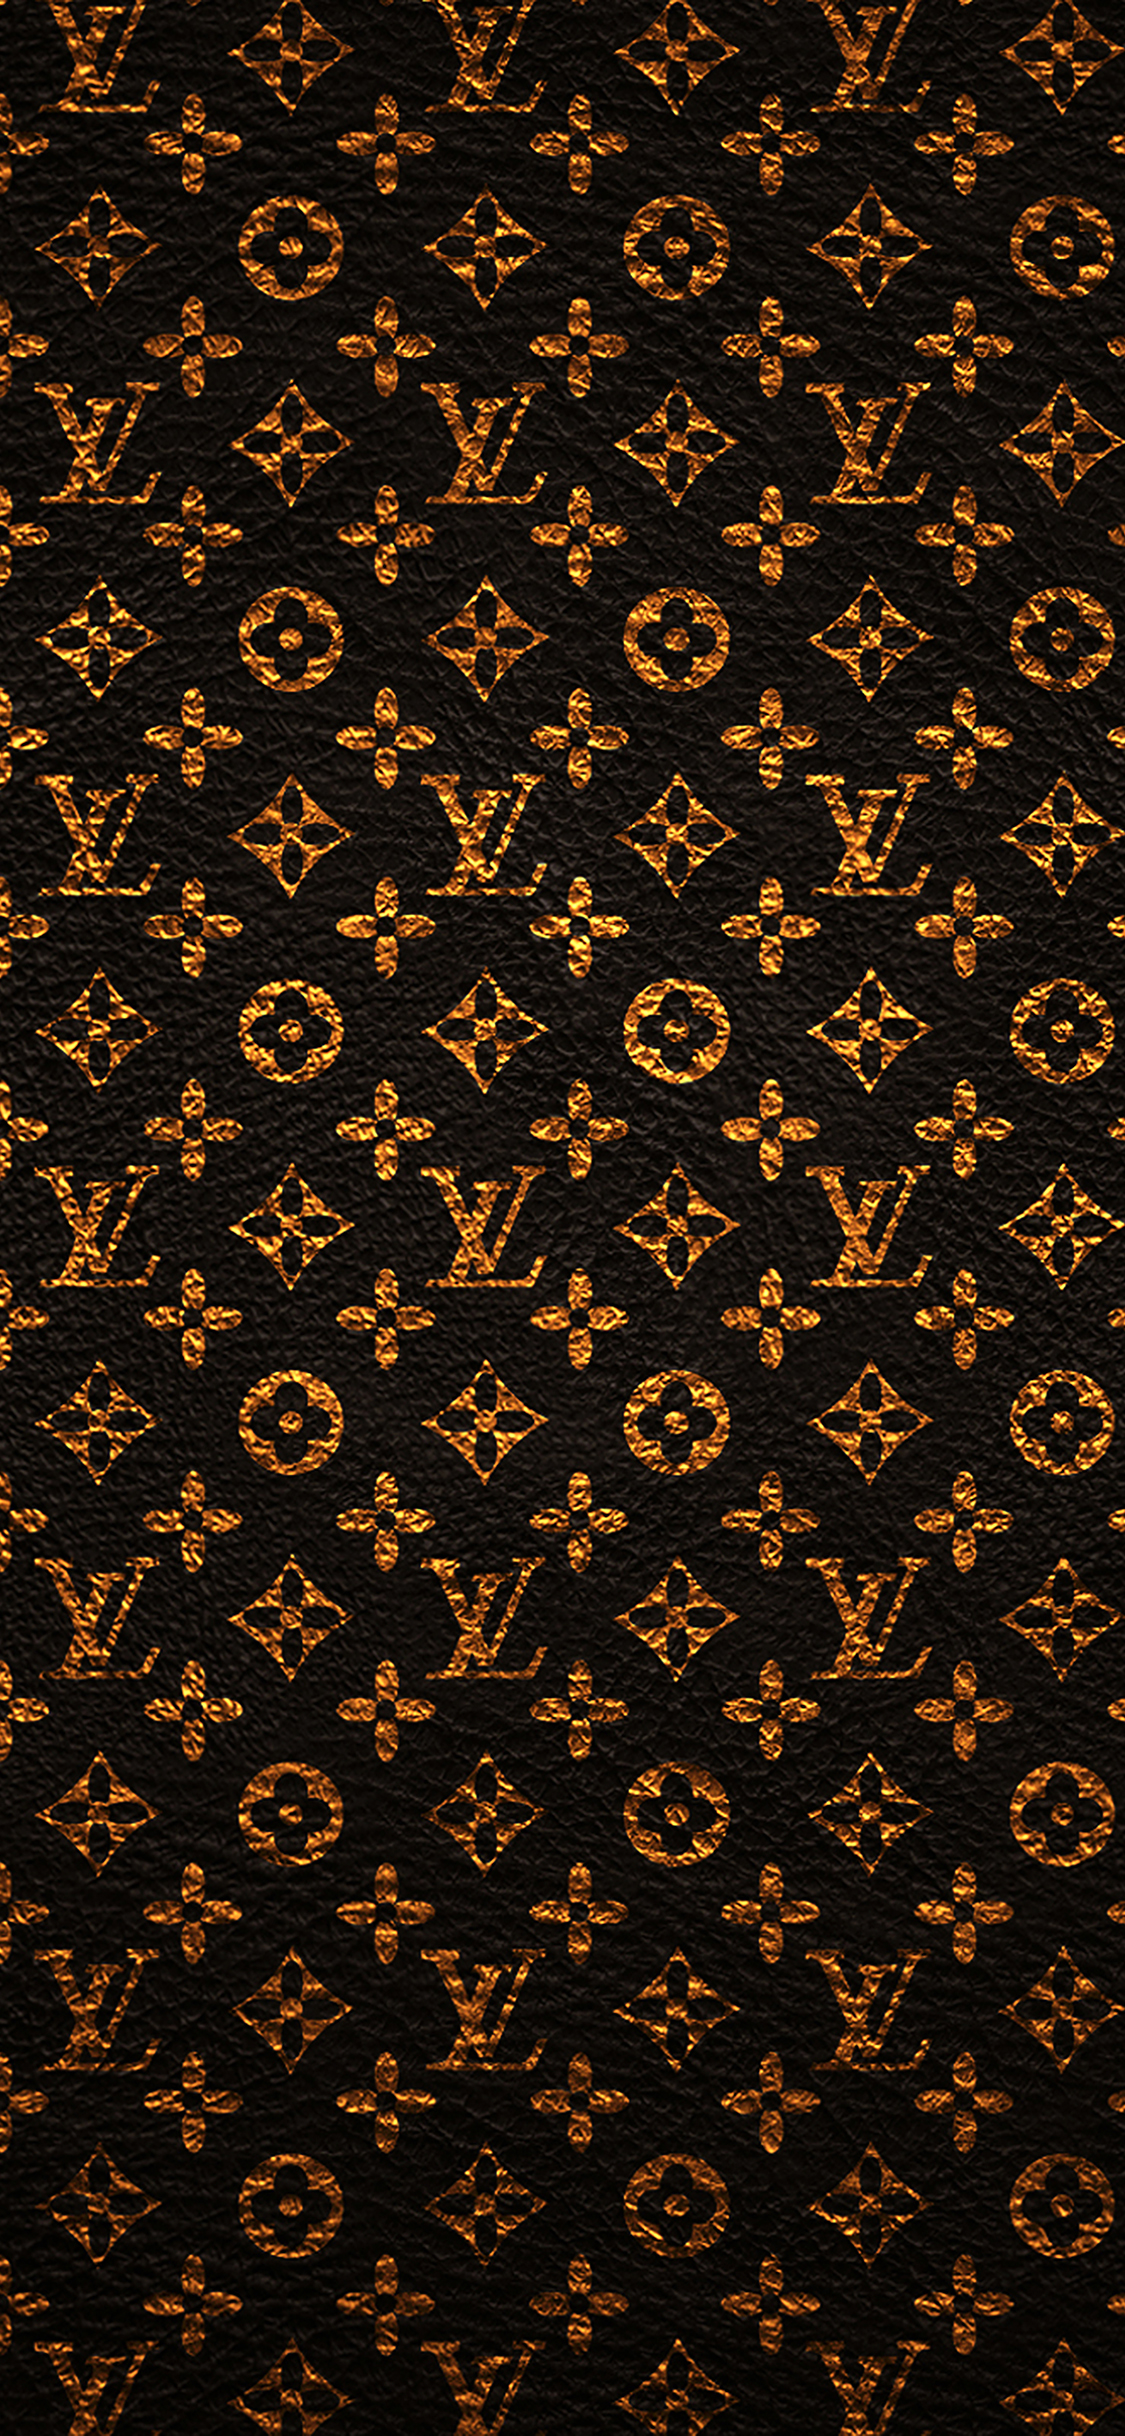 vf20-louis-vuitton-pattern-art - Papers.co